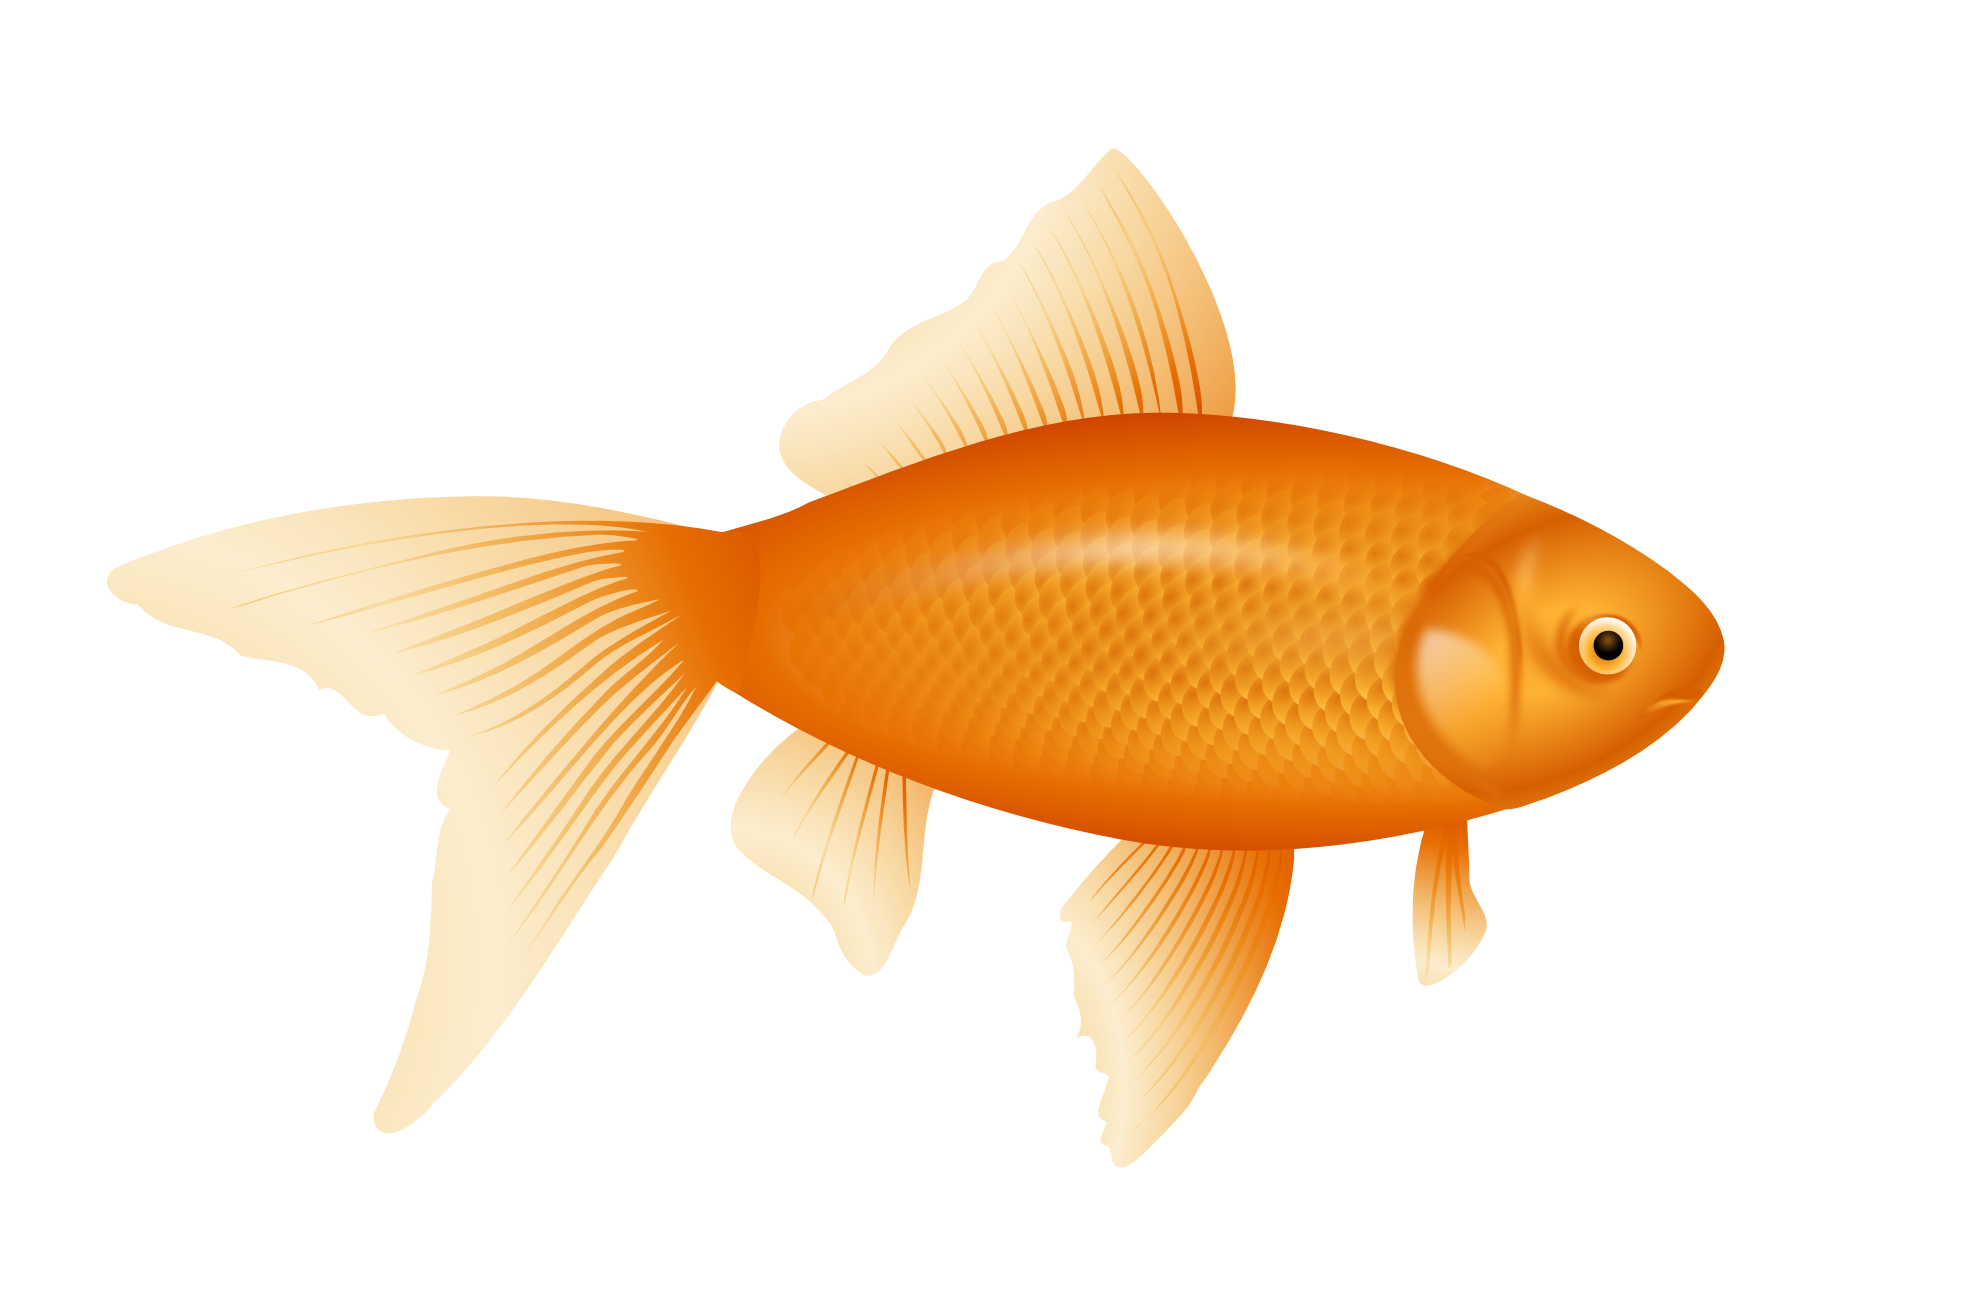 Fish on land clipart. Gold png image cliparts